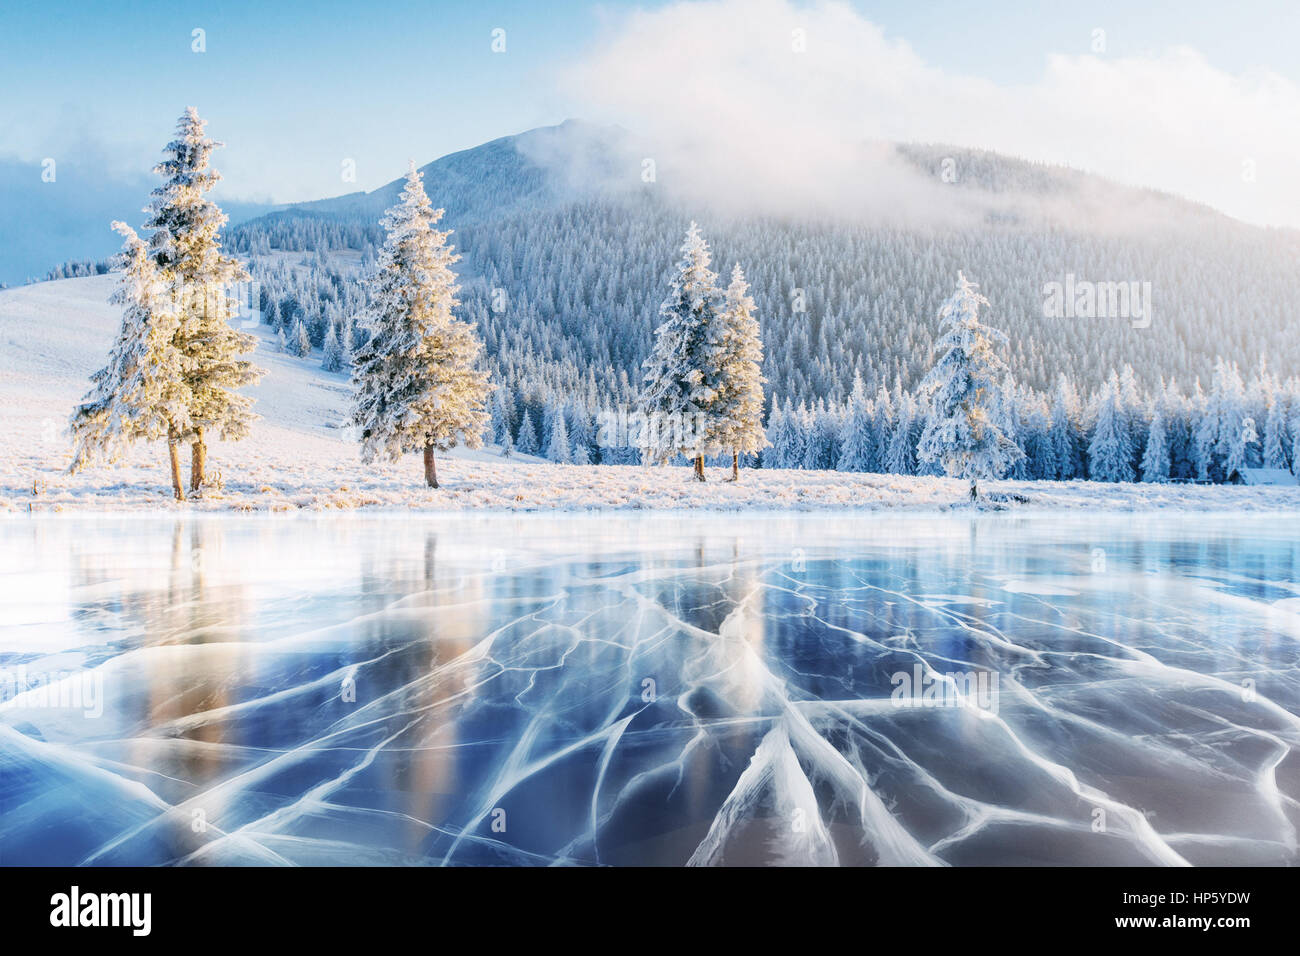 Blue ice and cracks on the surface of the . - Stock Image